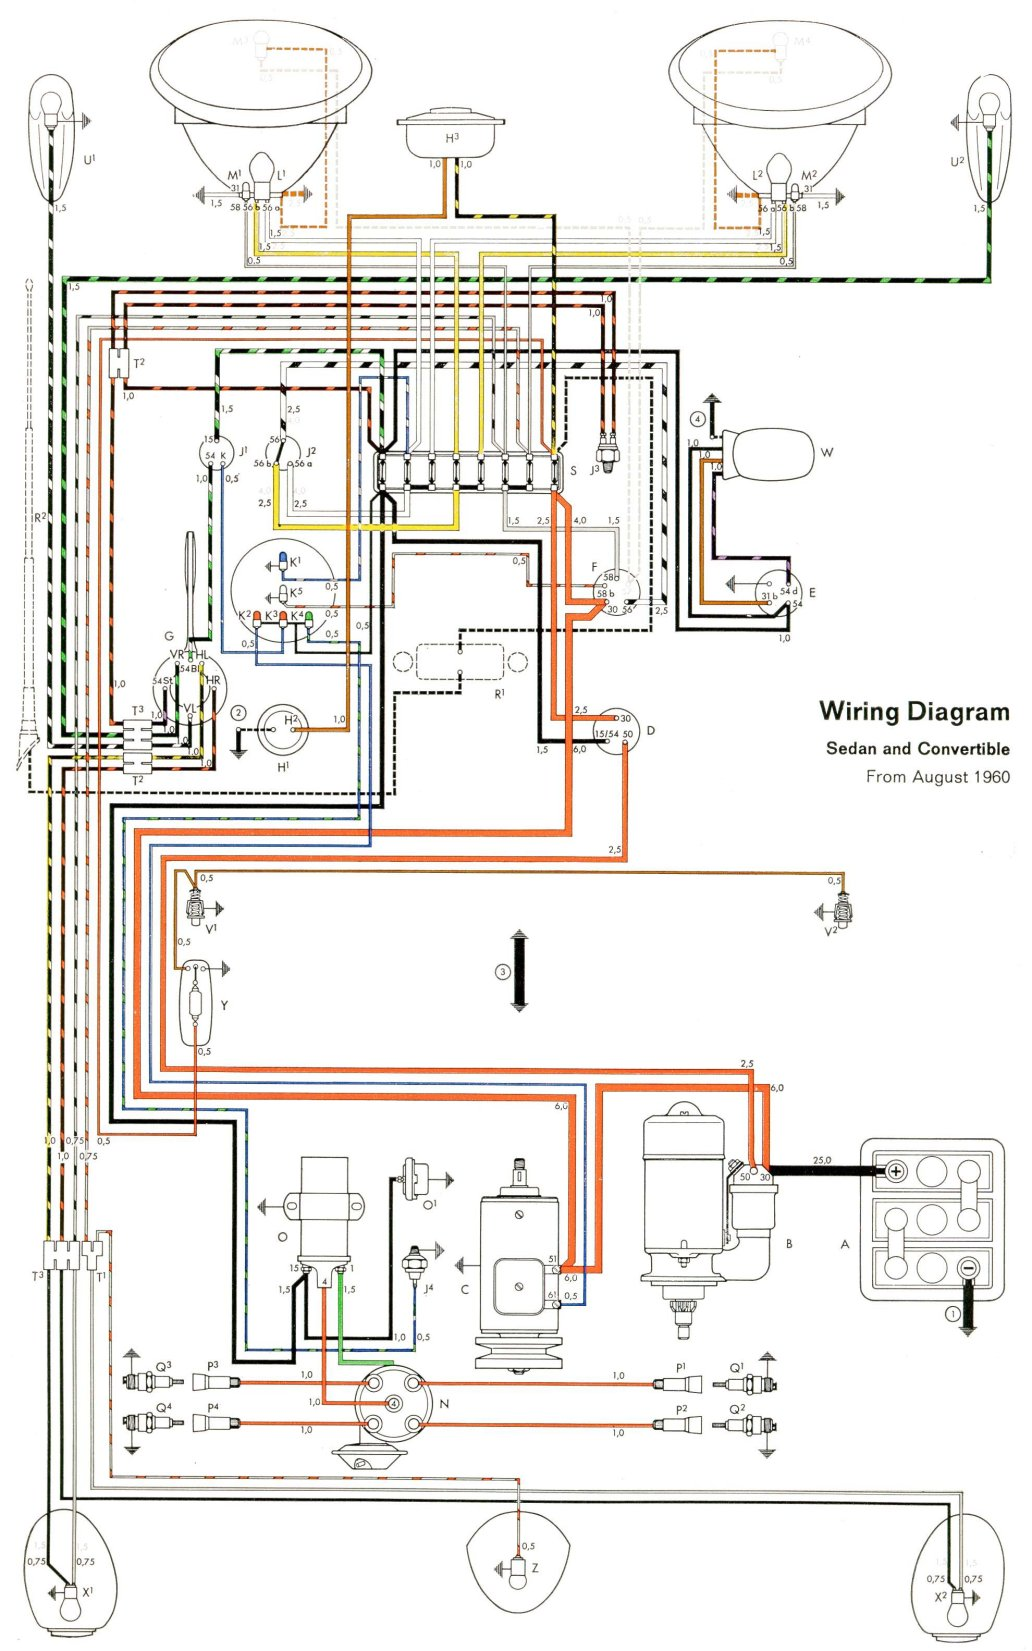 1971 Vw Beetle Wiring Diagram Reveolution Of Corsa B 1 0 Fuse Box Layout 74 Detailed Schematics Rh Antonartgallery Com Volkswagen